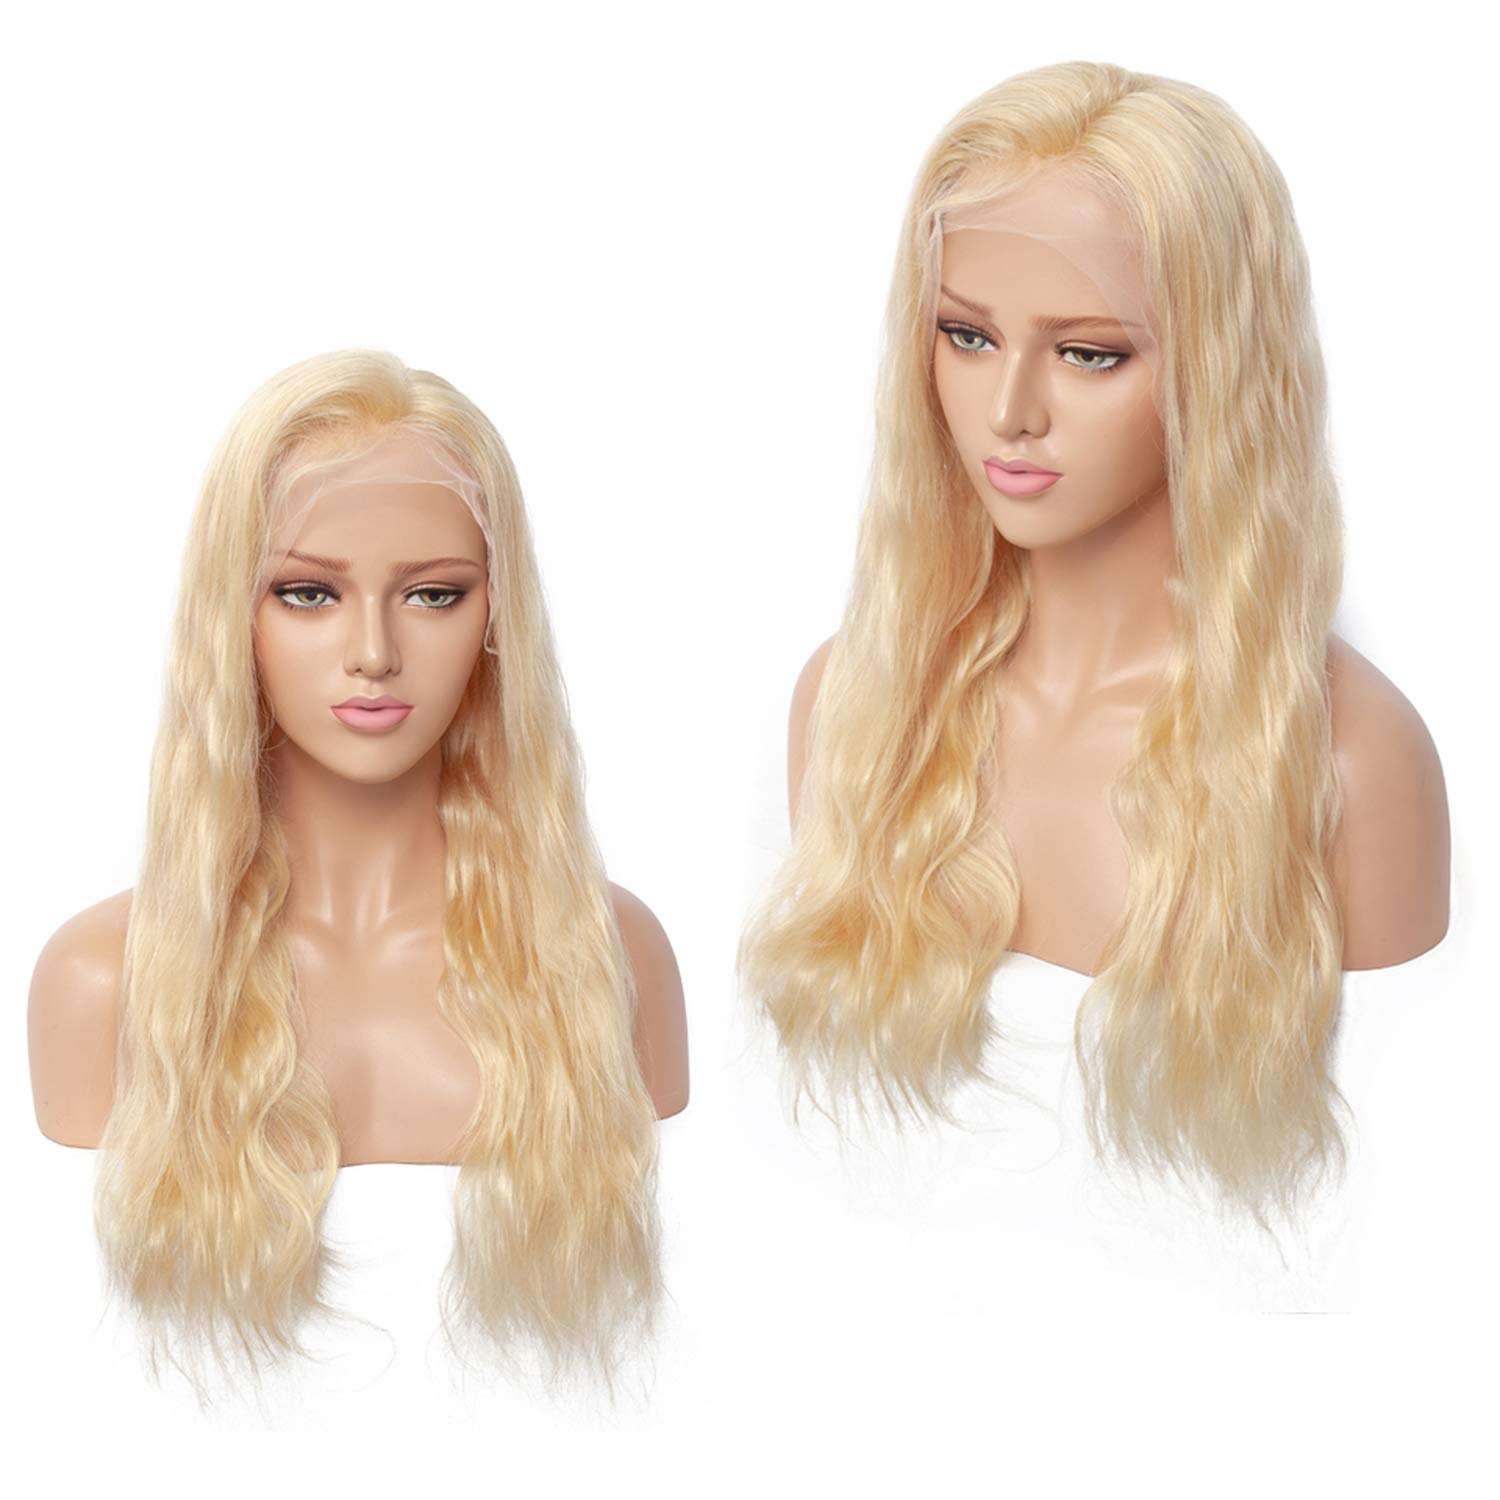 #613 Blonde Full Lace Wigs Peruvian Hair Transparent Lace Full Lace Human Hair Wig With Baby Hair 8-24 Inch,16inches,130% 61dKsalSwLL._SL1500_